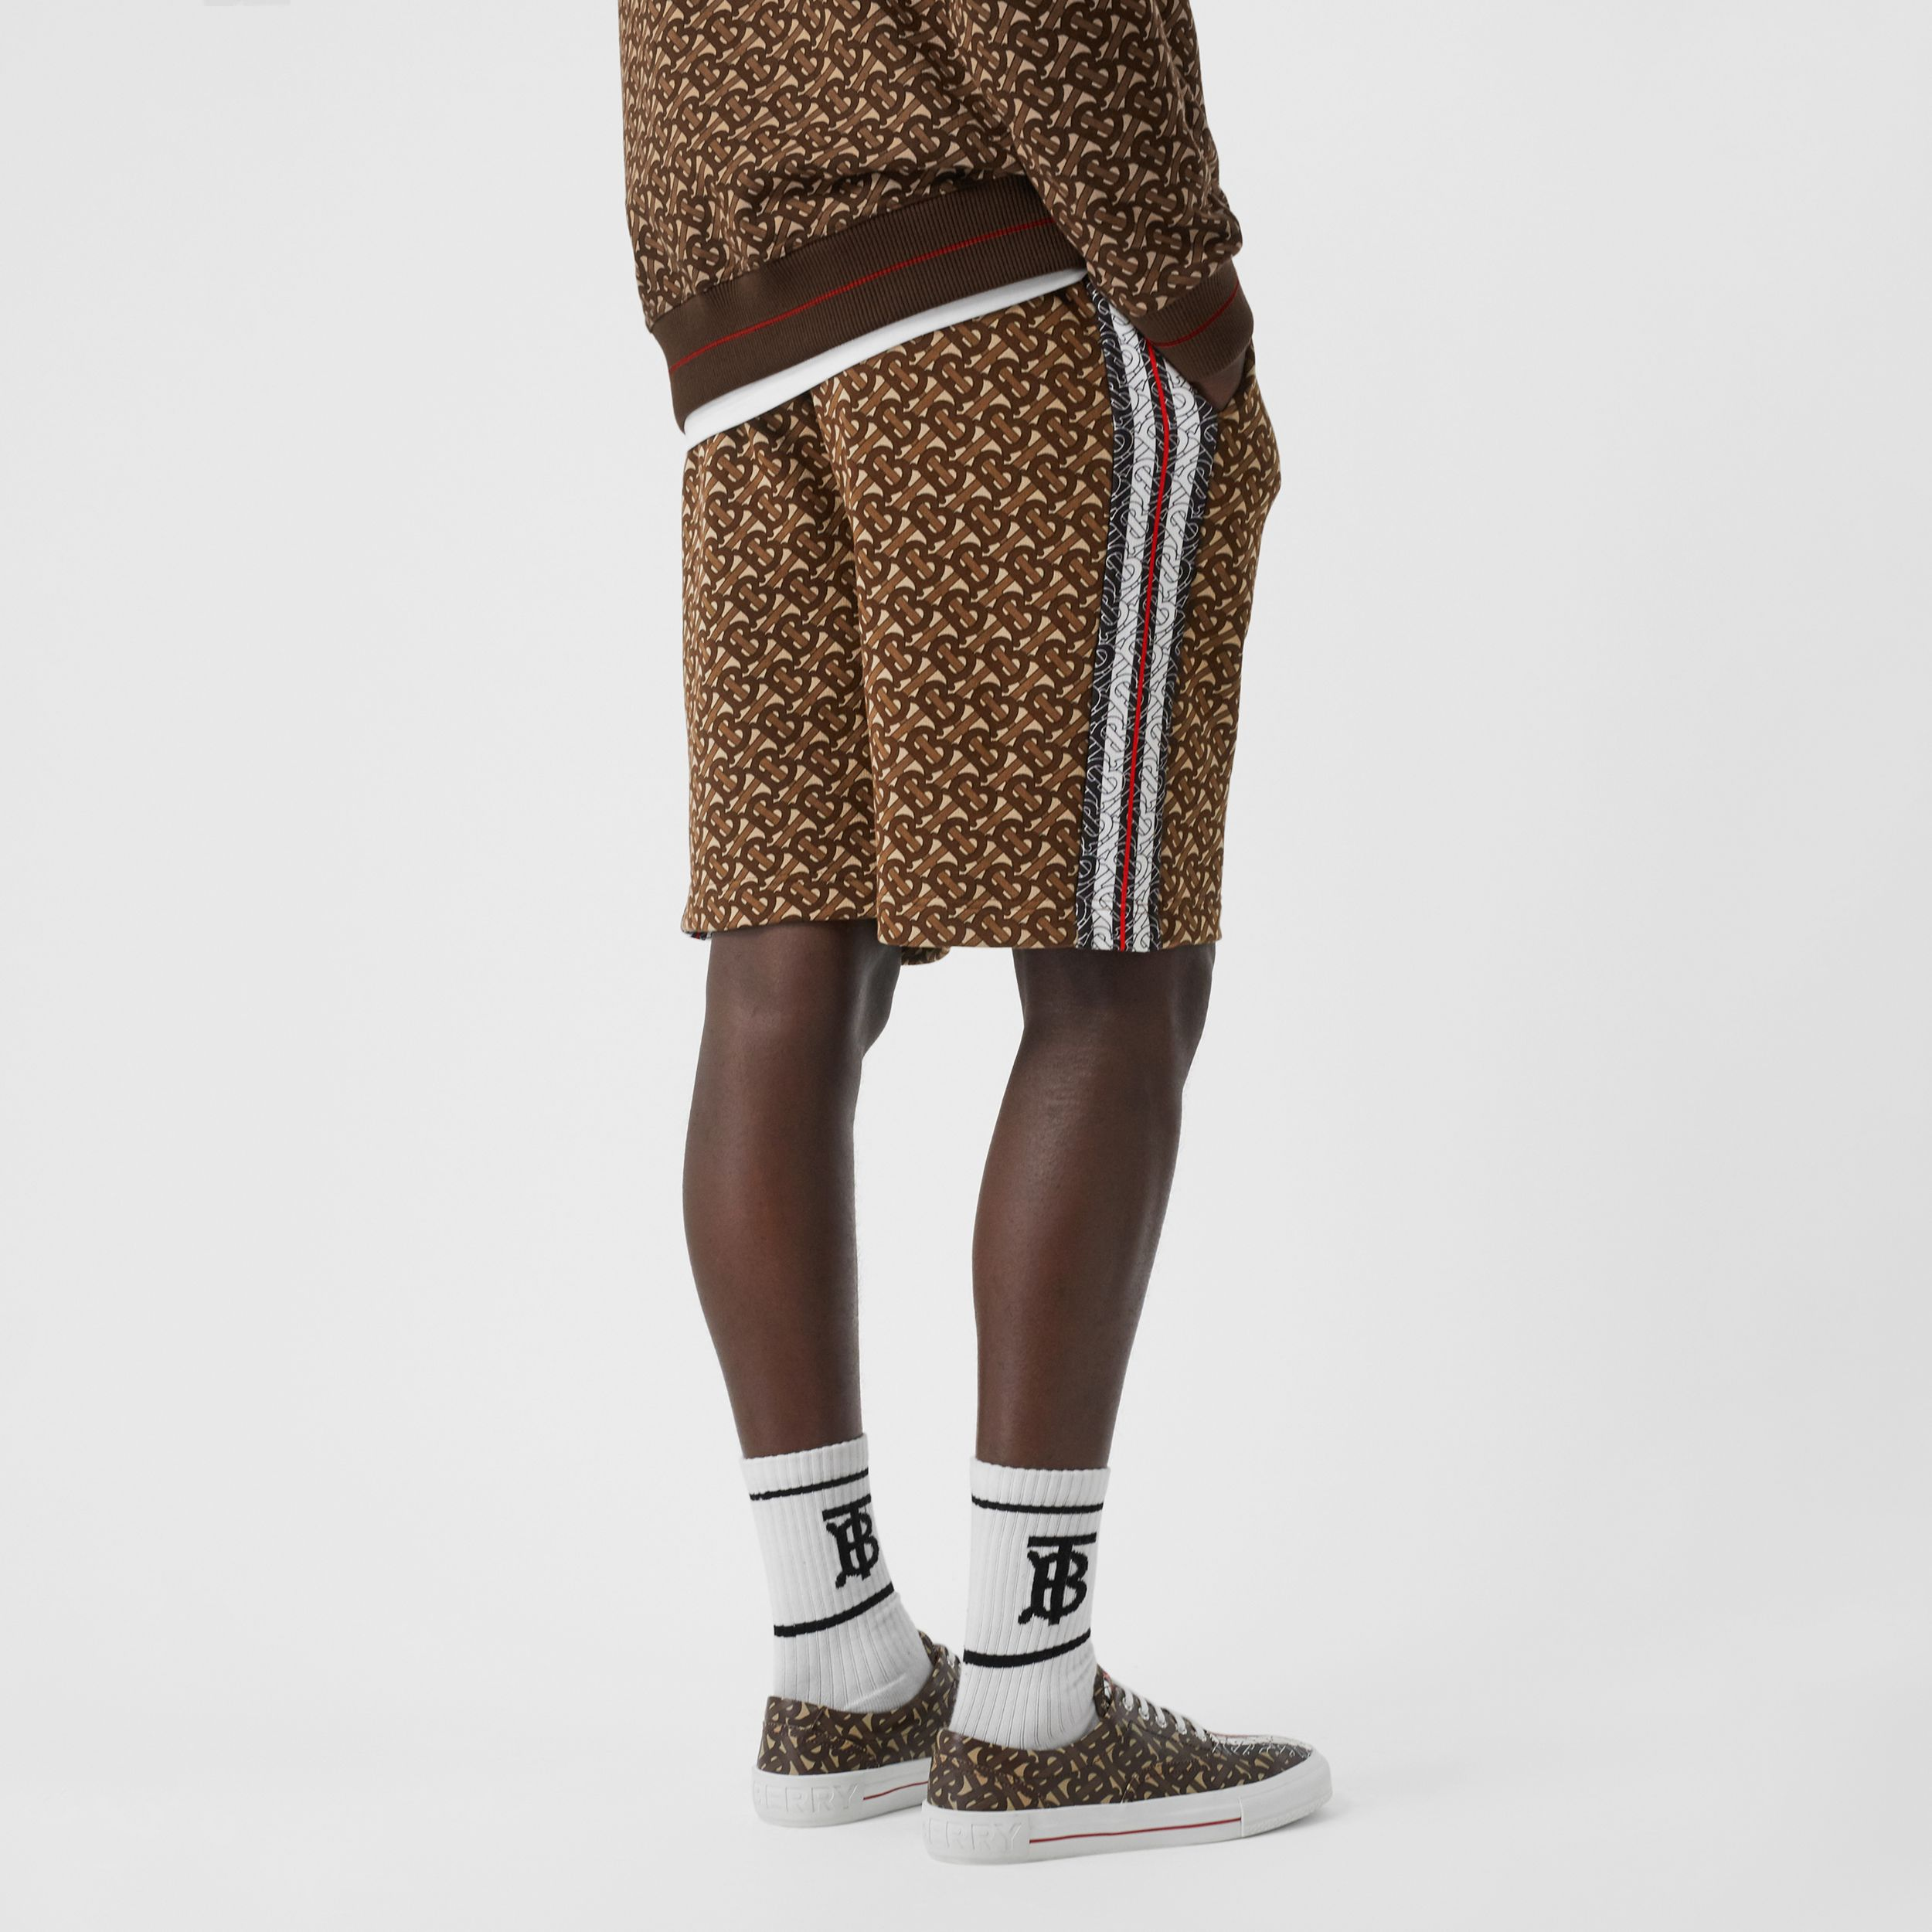 Monogram Stripe Print Cotton Drawcord Shorts in Bridle Brown - Men | Burberry - 3